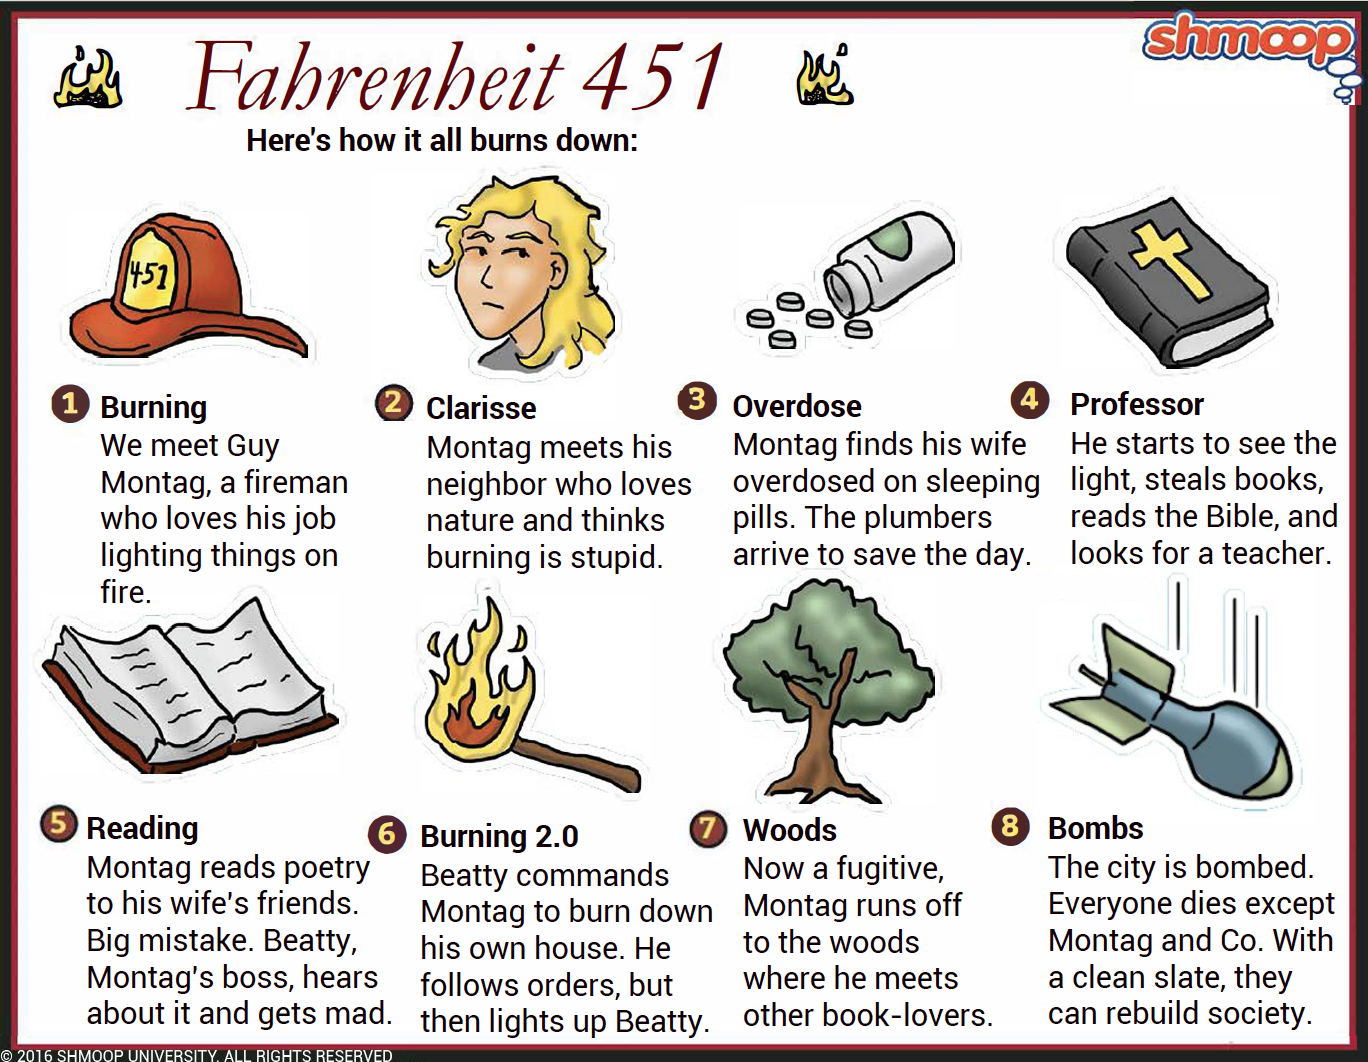 fahrenheit 451 comparison essay The dystopian novel fahrenheit 451 written by the famous fiction writer ray bradbury in 1953 tells the story of a 30-year-old fireman, guy montag in the beginning thesis statement and compare contrast essay asked by admin.